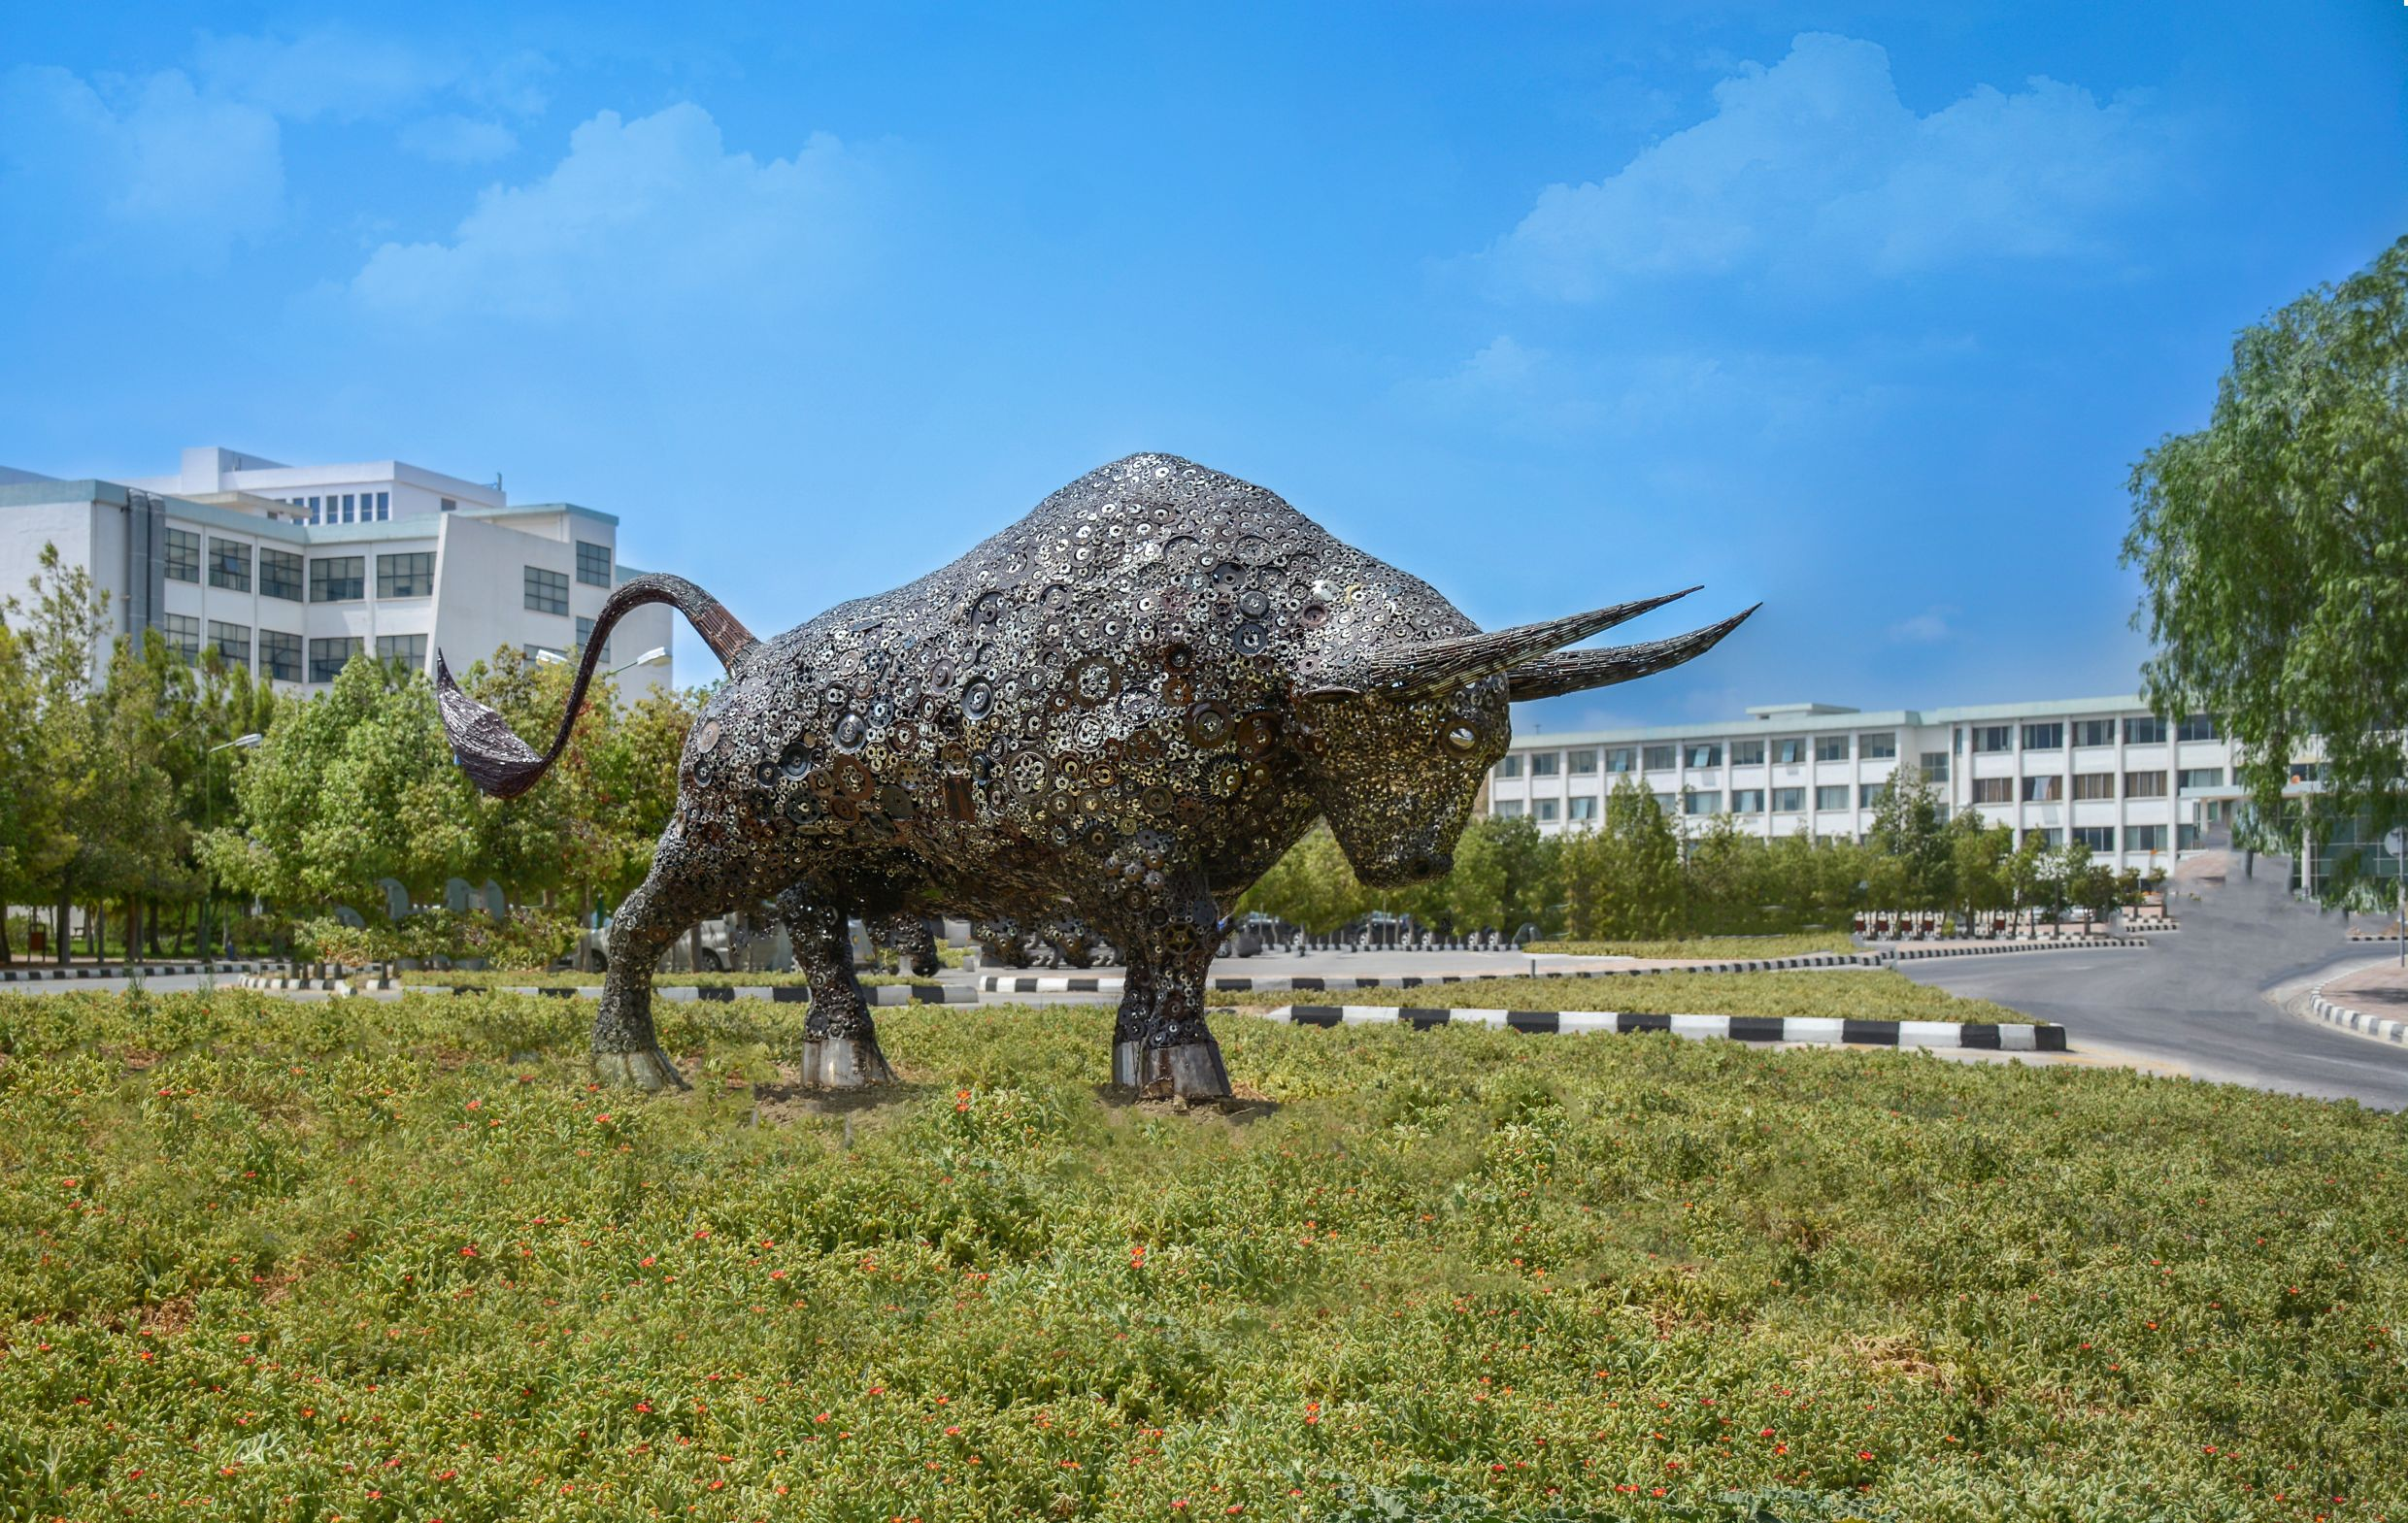 The Art of Reproduction … The Metal Bull Sculpture Made of Tens of Thousands Particles is exhibited on the Near East University campus